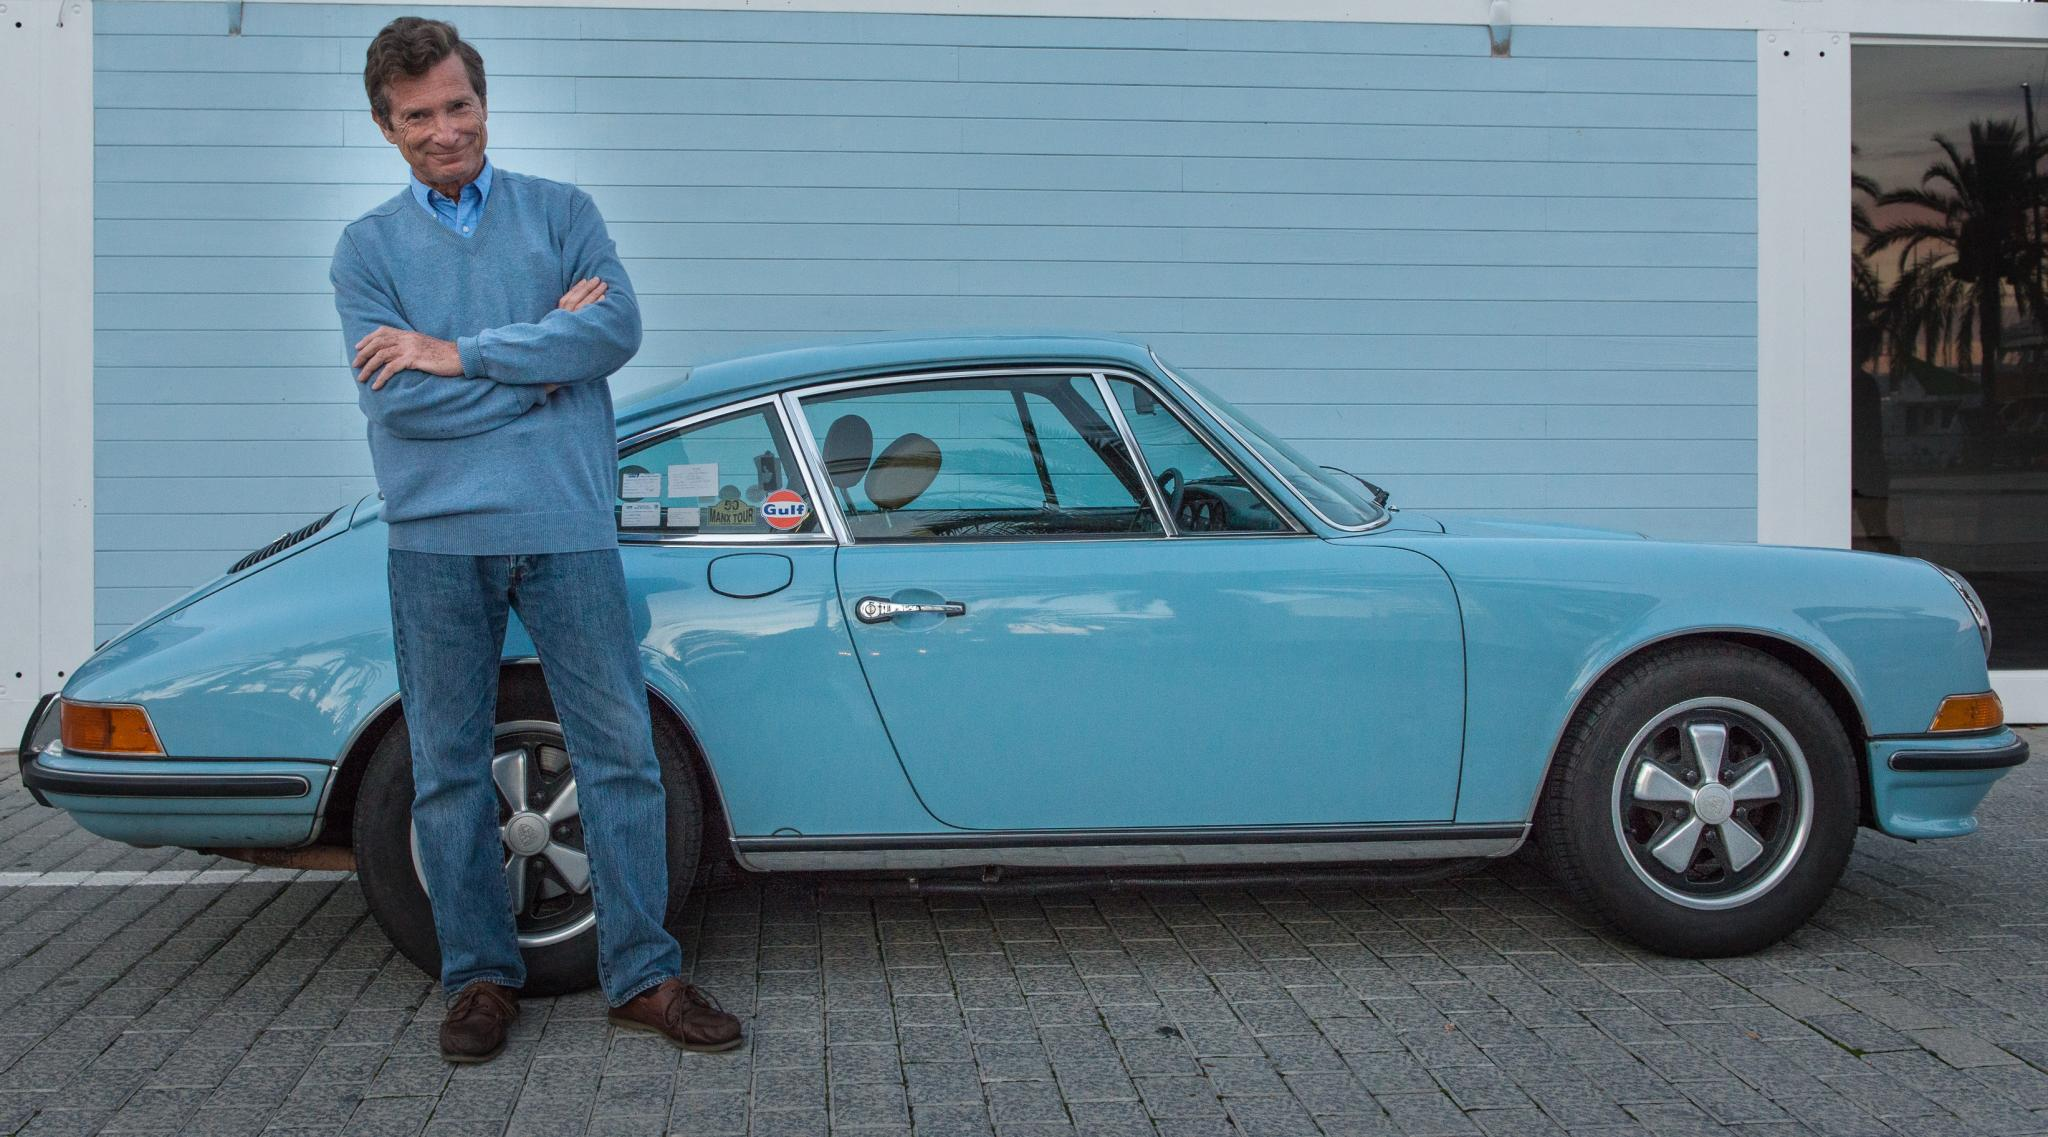 Early 911 wearing those fabulous Fuchs alloys with proud owner in matching outfit